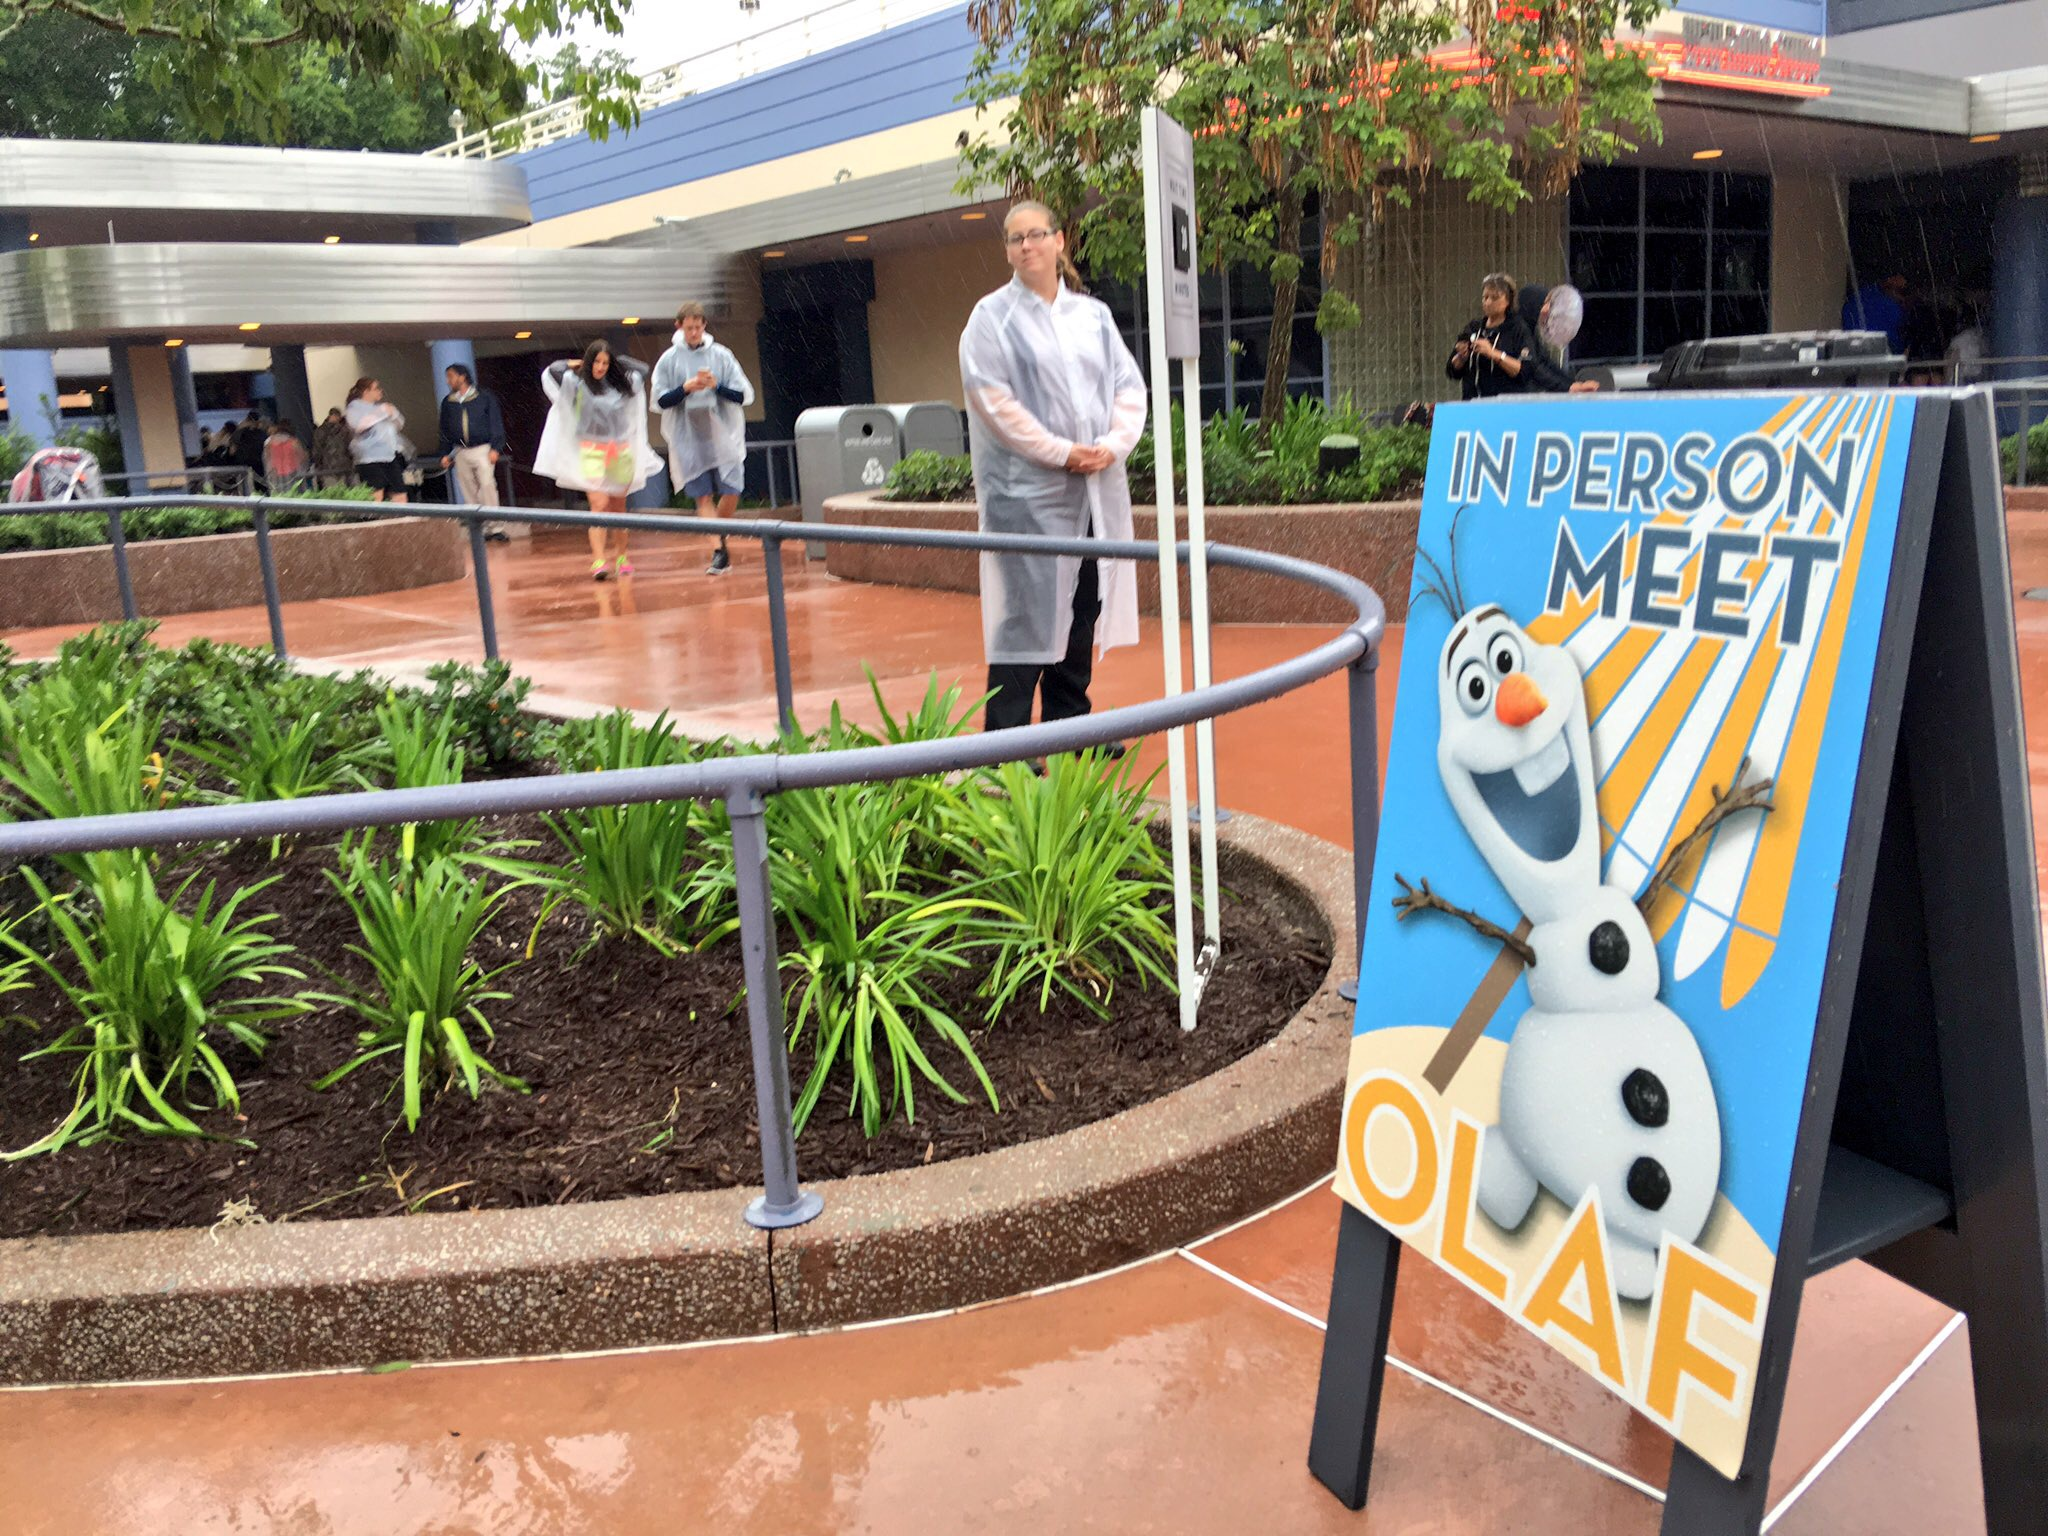 Olaf meet and greet debuts in disneys hollywood studios as part of the new celebrity spotlight location formerly american idol experience audition space olaf is ready to provide warm hugs to all guests m4hsunfo